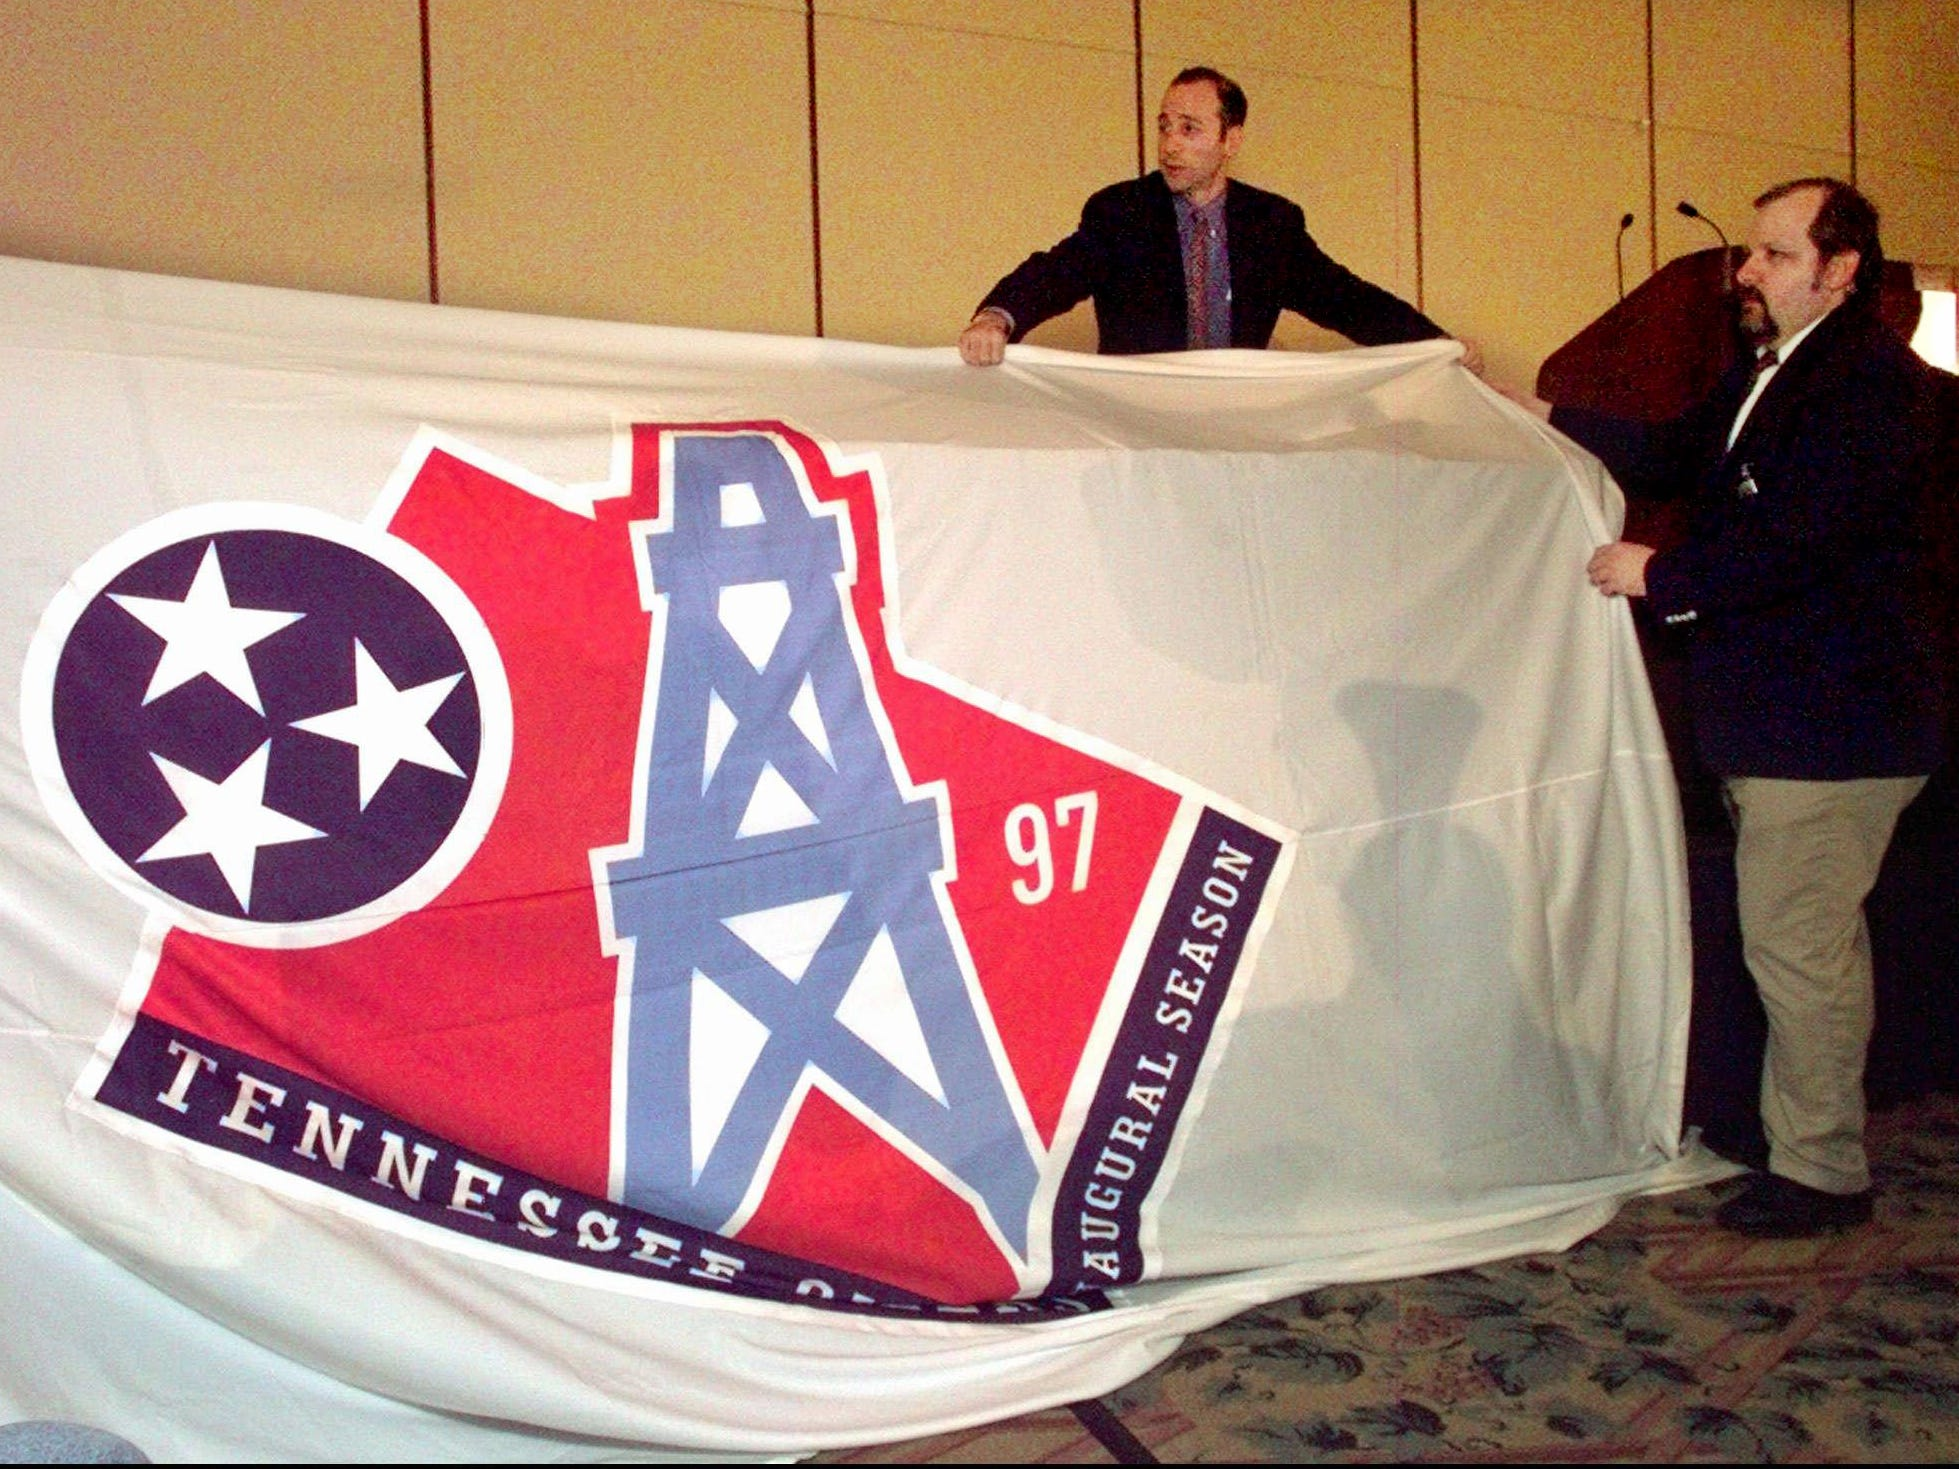 David Goldman, of NFL properties, left, and Alan Reitano drape a banner with the new Tennessee Oilers logo over a table before it is unveiled in Nashville June 12, 1997. The banner was placed over the table after it fell down from the wall. The Oilers will use the new logo during their inaugural season in Tennessee this year.